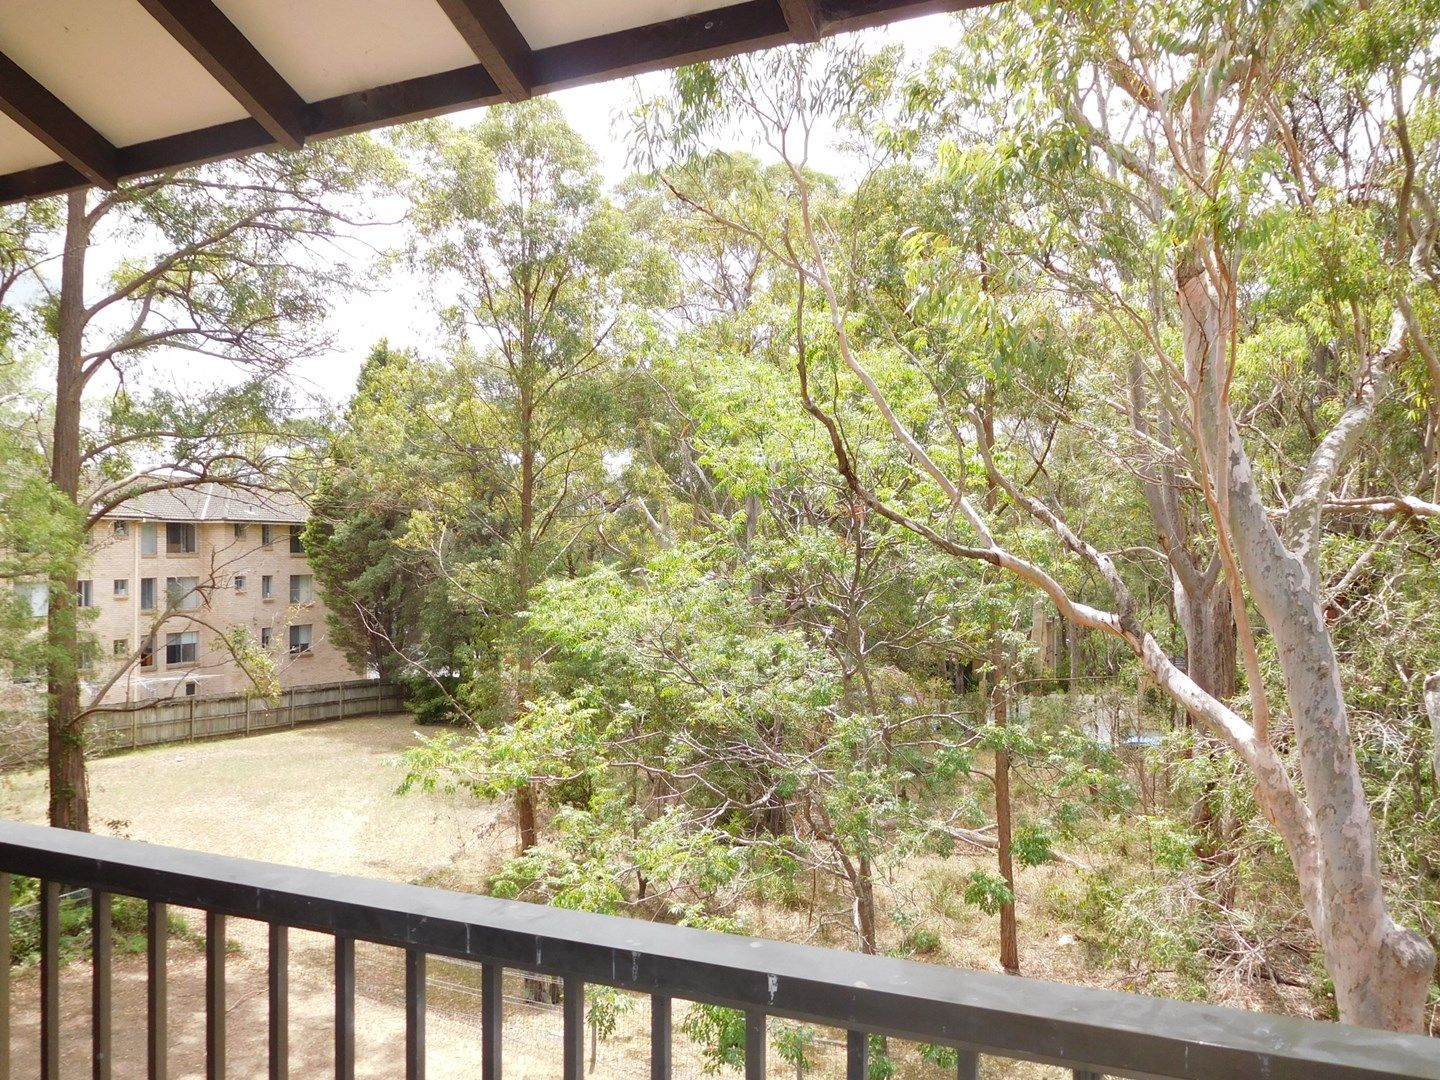 21/25-27 Fontenoy Road, Macquarie Park NSW 2113, Image 2